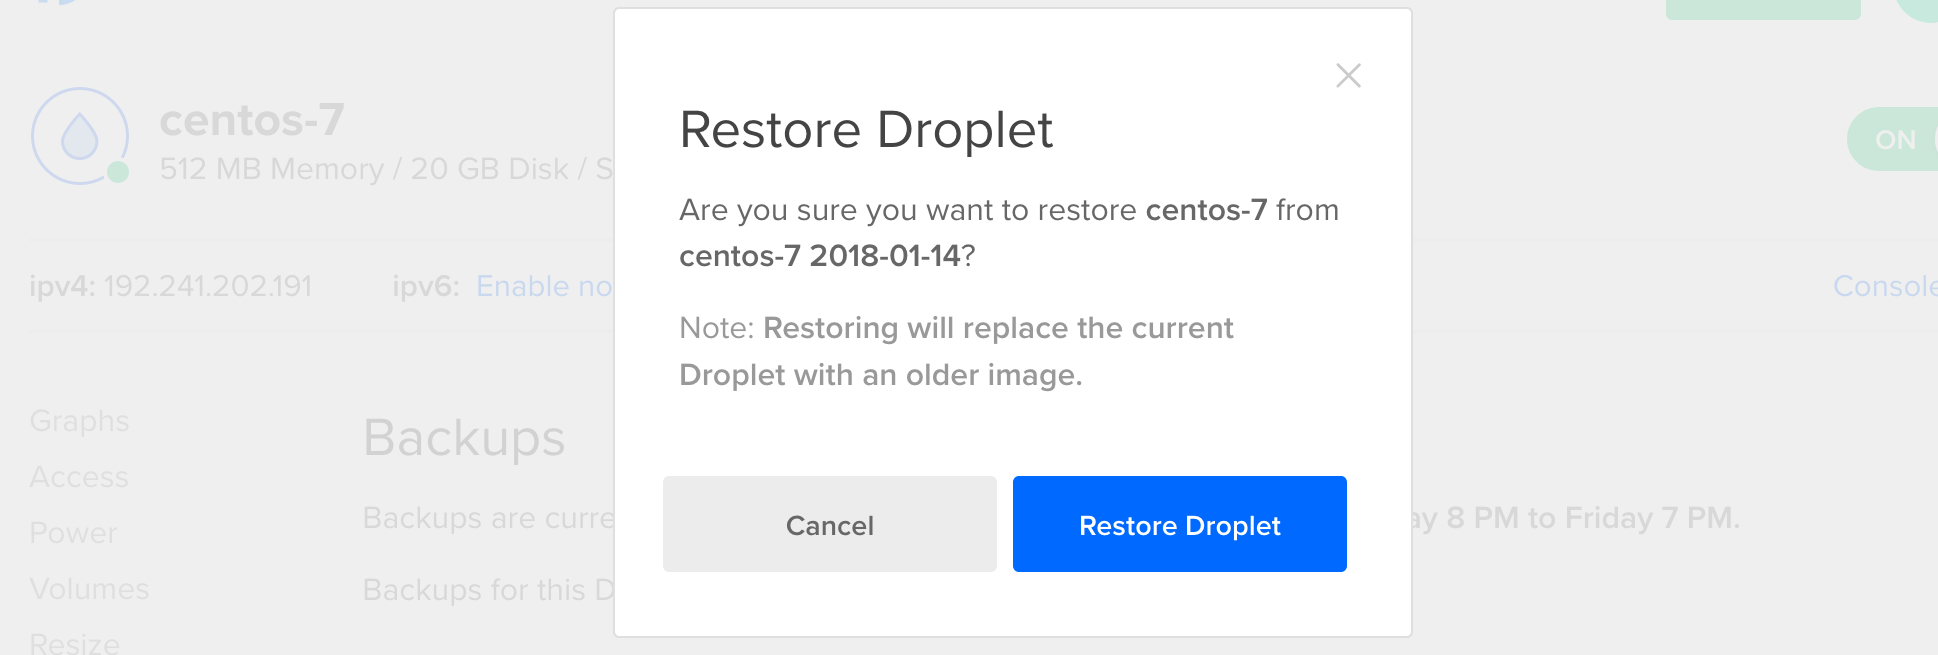 Restore Droplet Confirmation